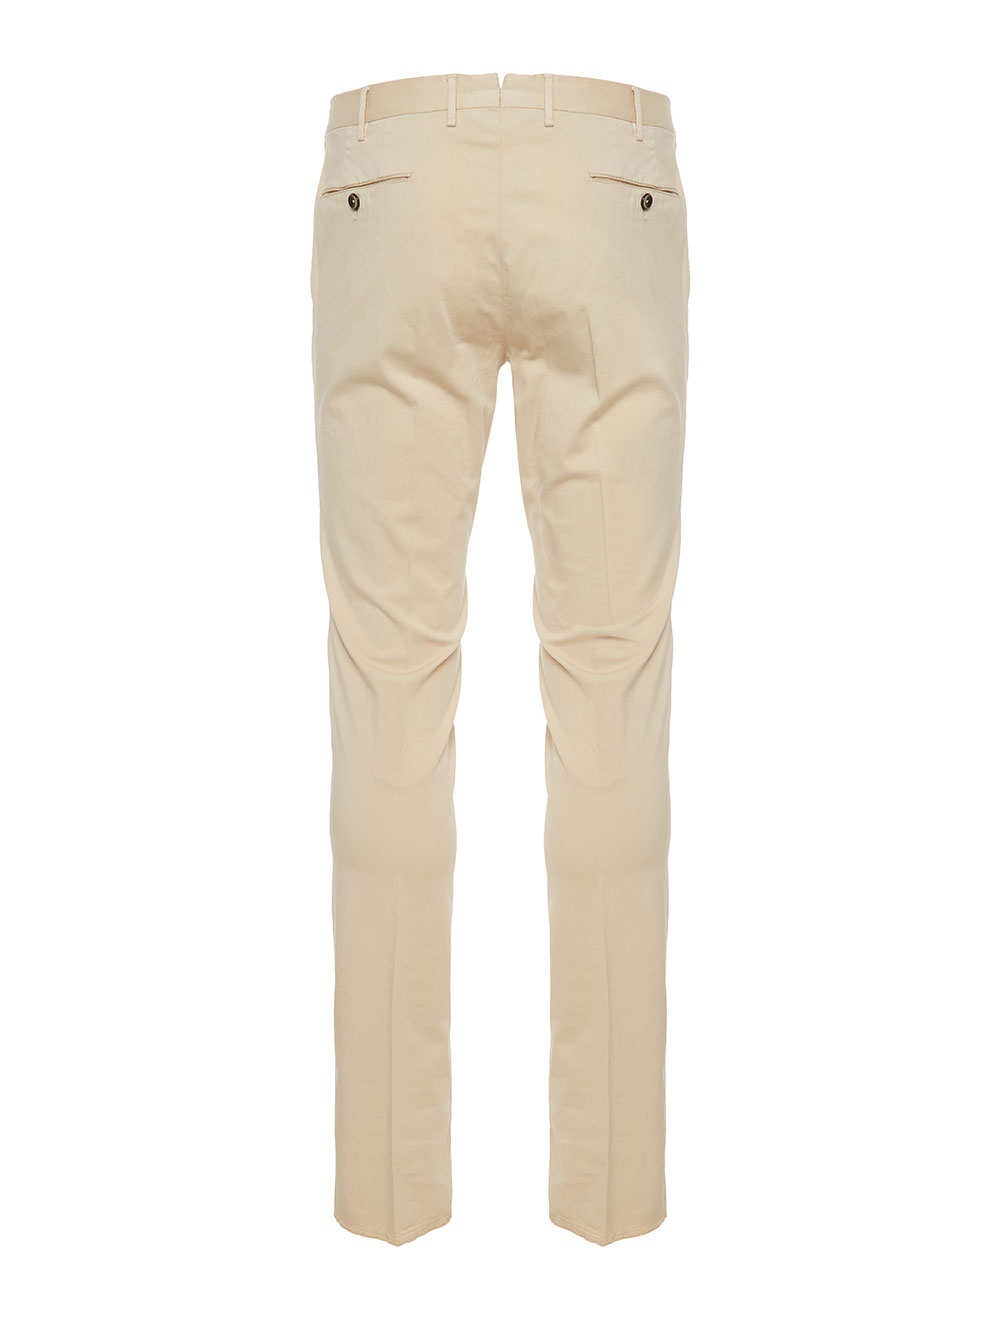 Trousers Business Evo Fit beige PT01 m3gA4ZJ7qY